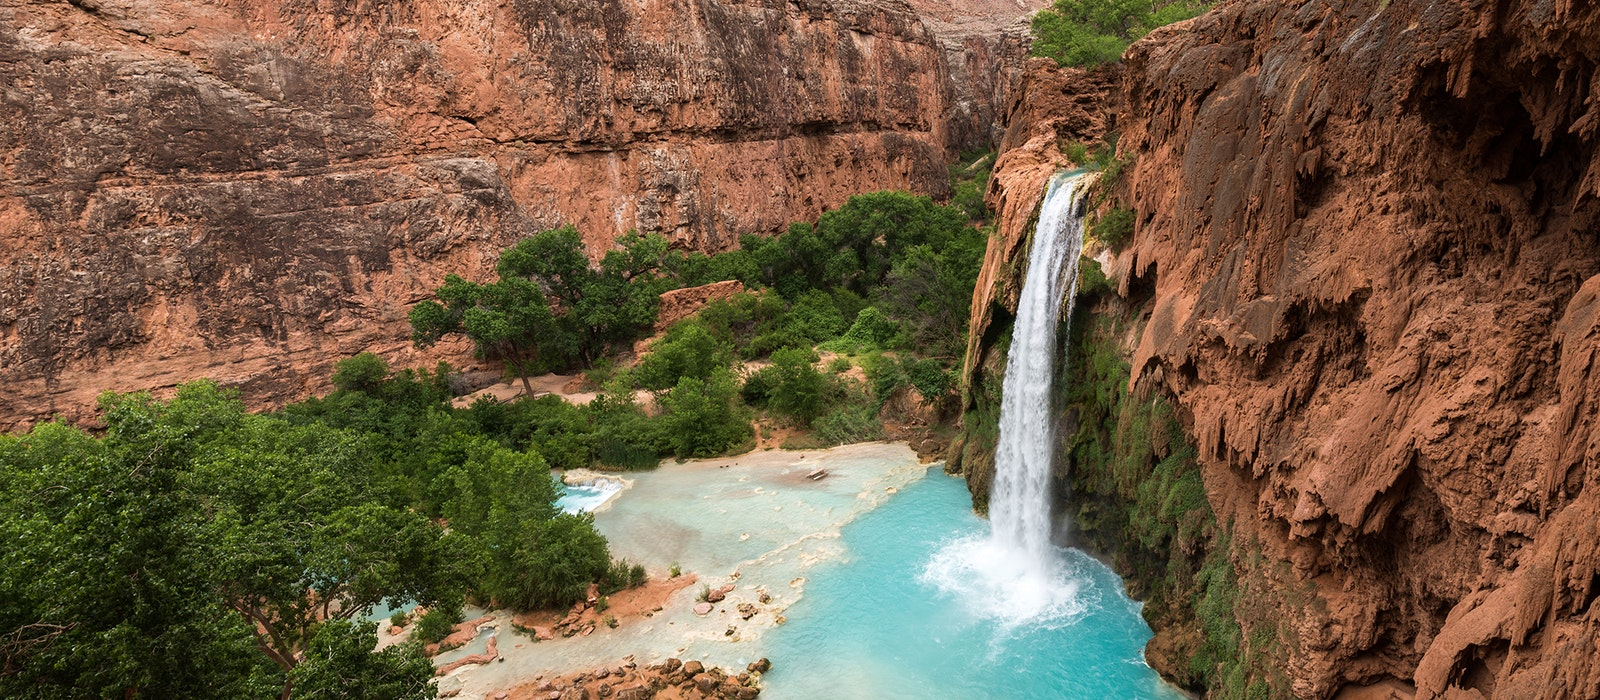 The hardest part of the Havasu Falls hike in the Grand Canyon is winning the campground permit lottery.